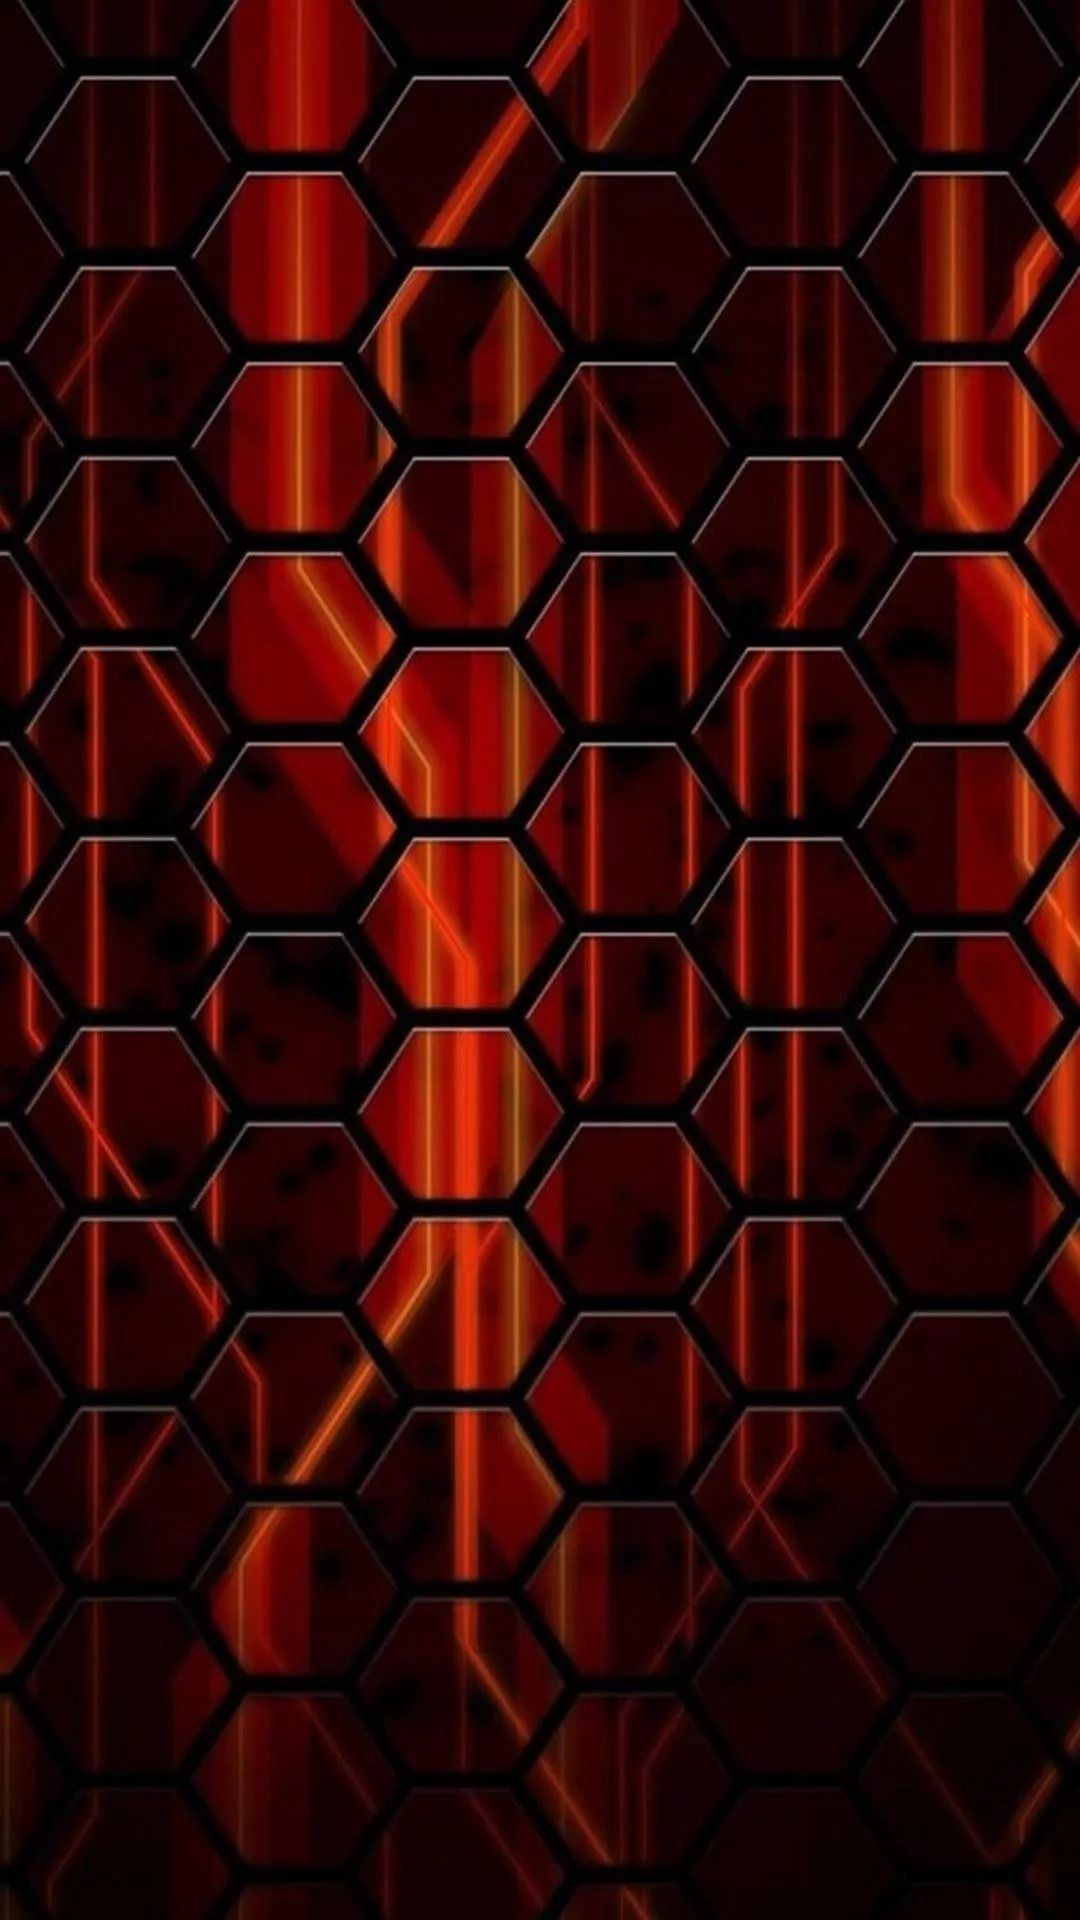 Red Hd hd wallpaper